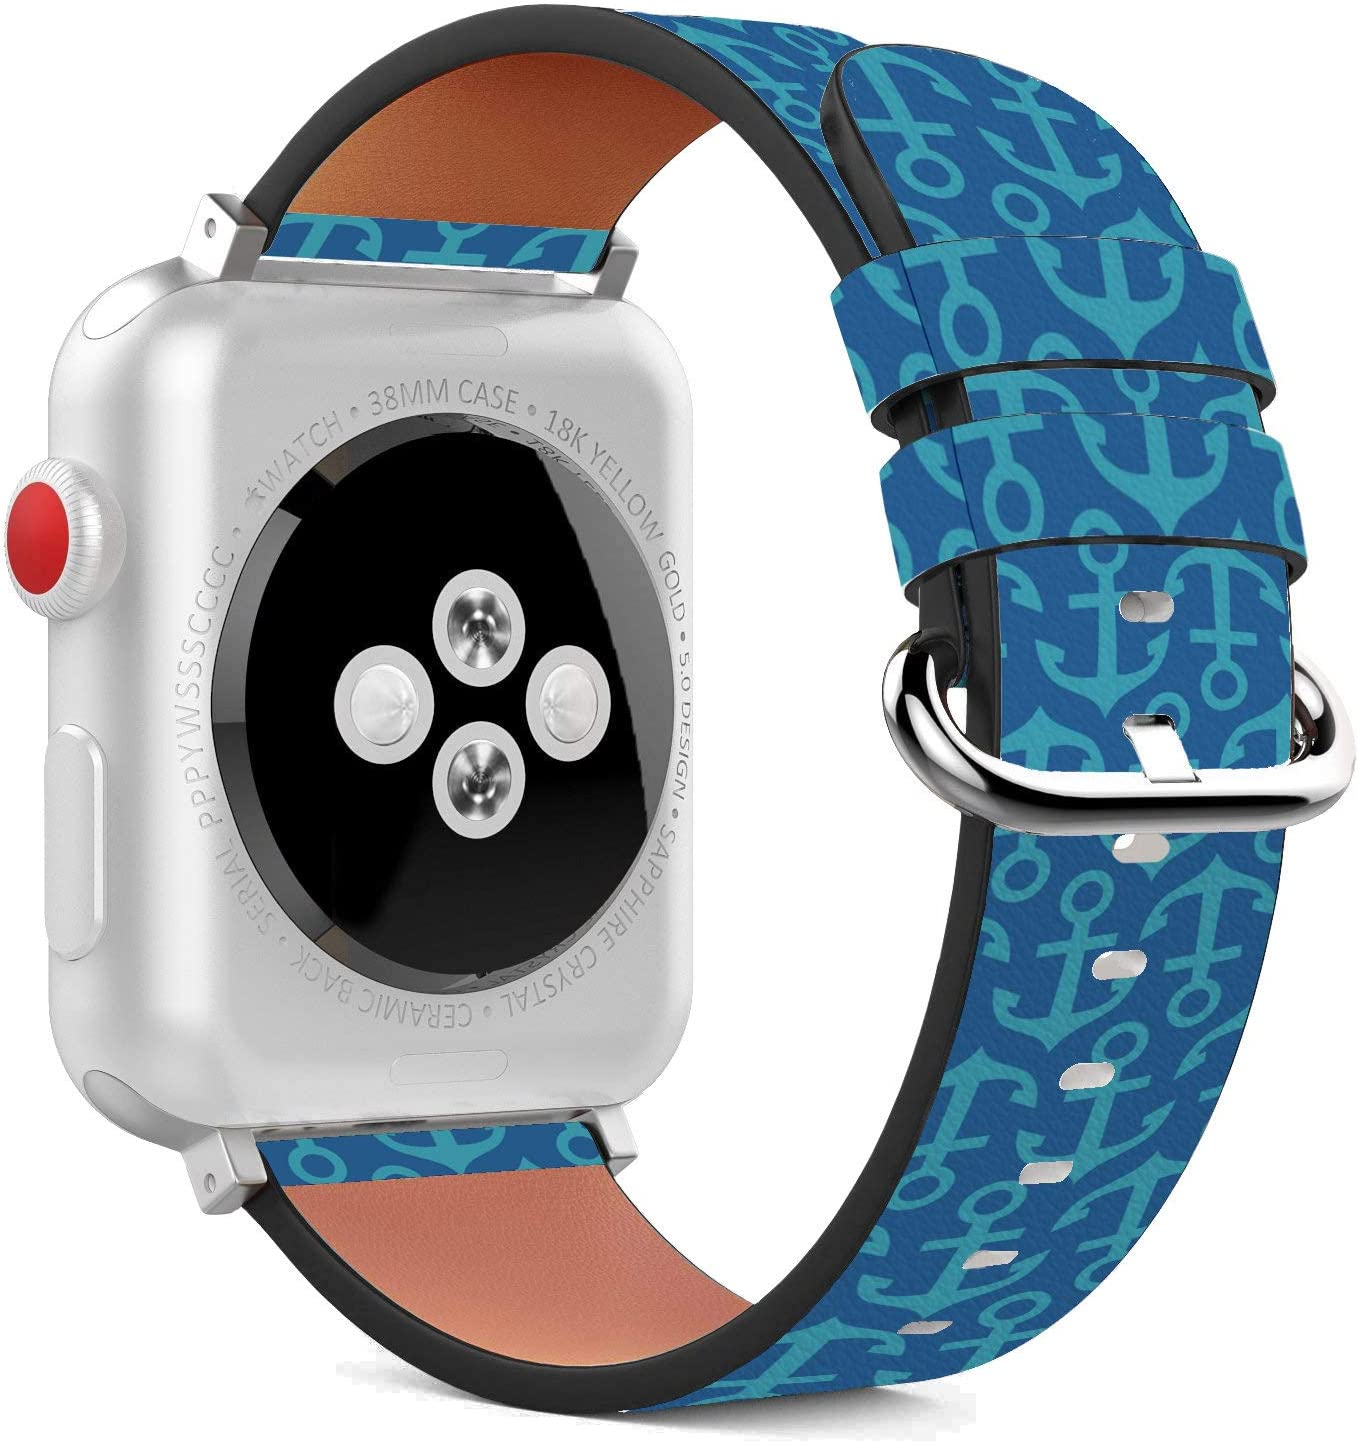 Compatible with Apple Watch - 38mm / 40mm (Serie 5,4,3,2,1) Leather Wristband Bracelet with Stainless Steel Clasp and Adapters - Teal Anchor